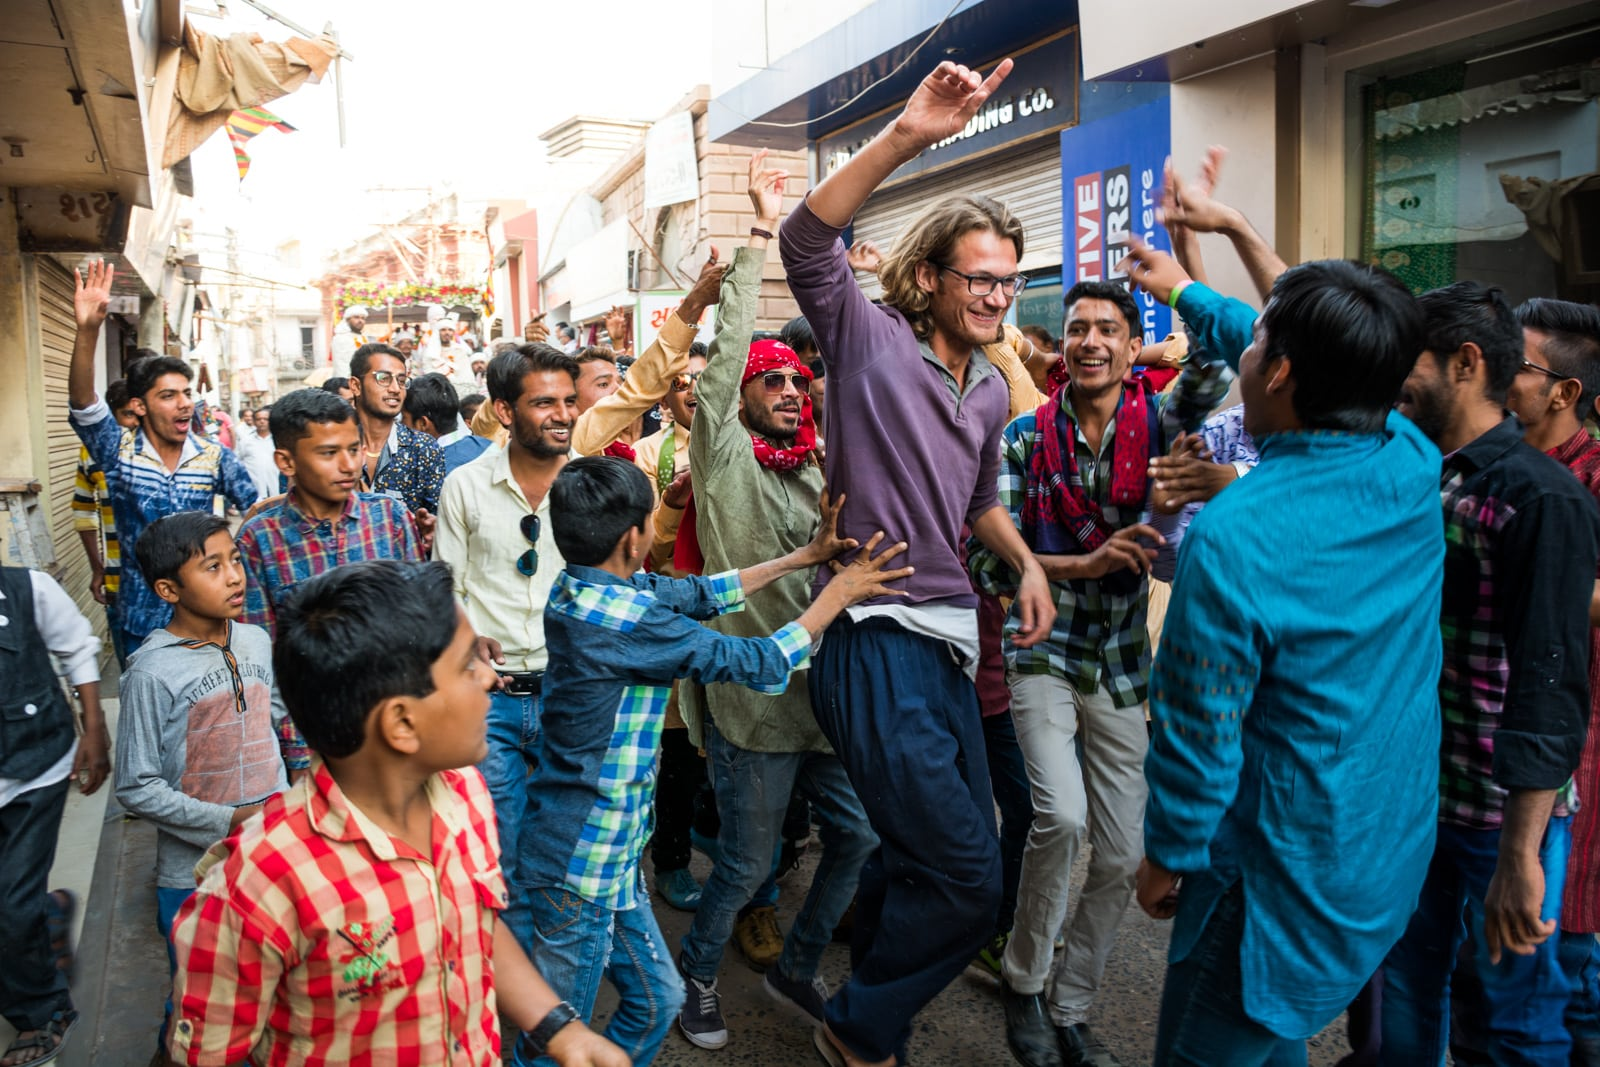 Reasons to fall in love with India - Sebastiaan getting sucked into a wedding party in Bhuj, Gujarat state, India - Lost With Purpose travel blog